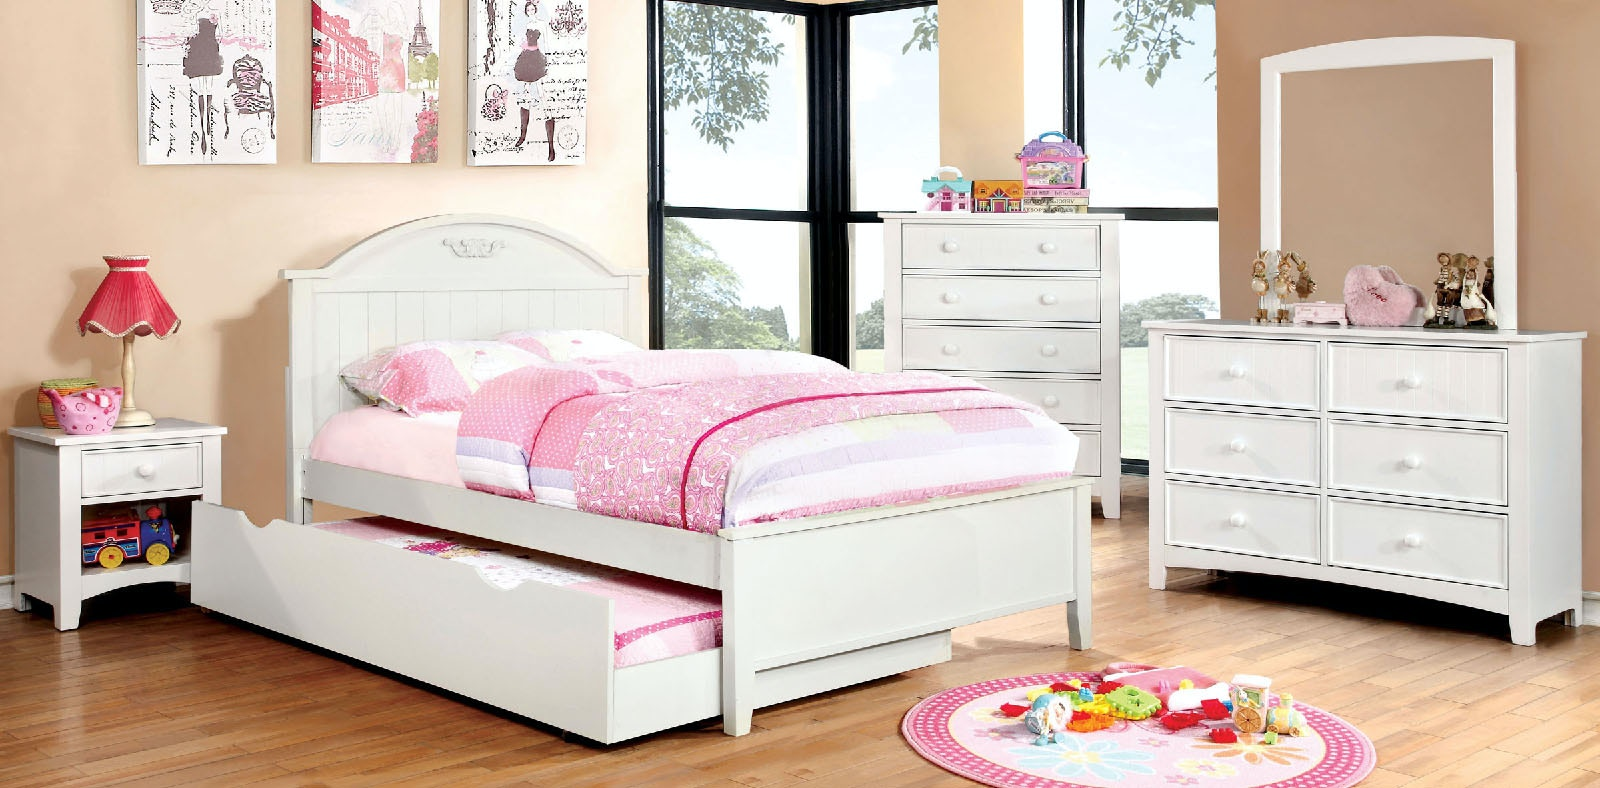 Furniture Of America Bedroom Twin Bed CM7942WH T BED At The Furniture Mall